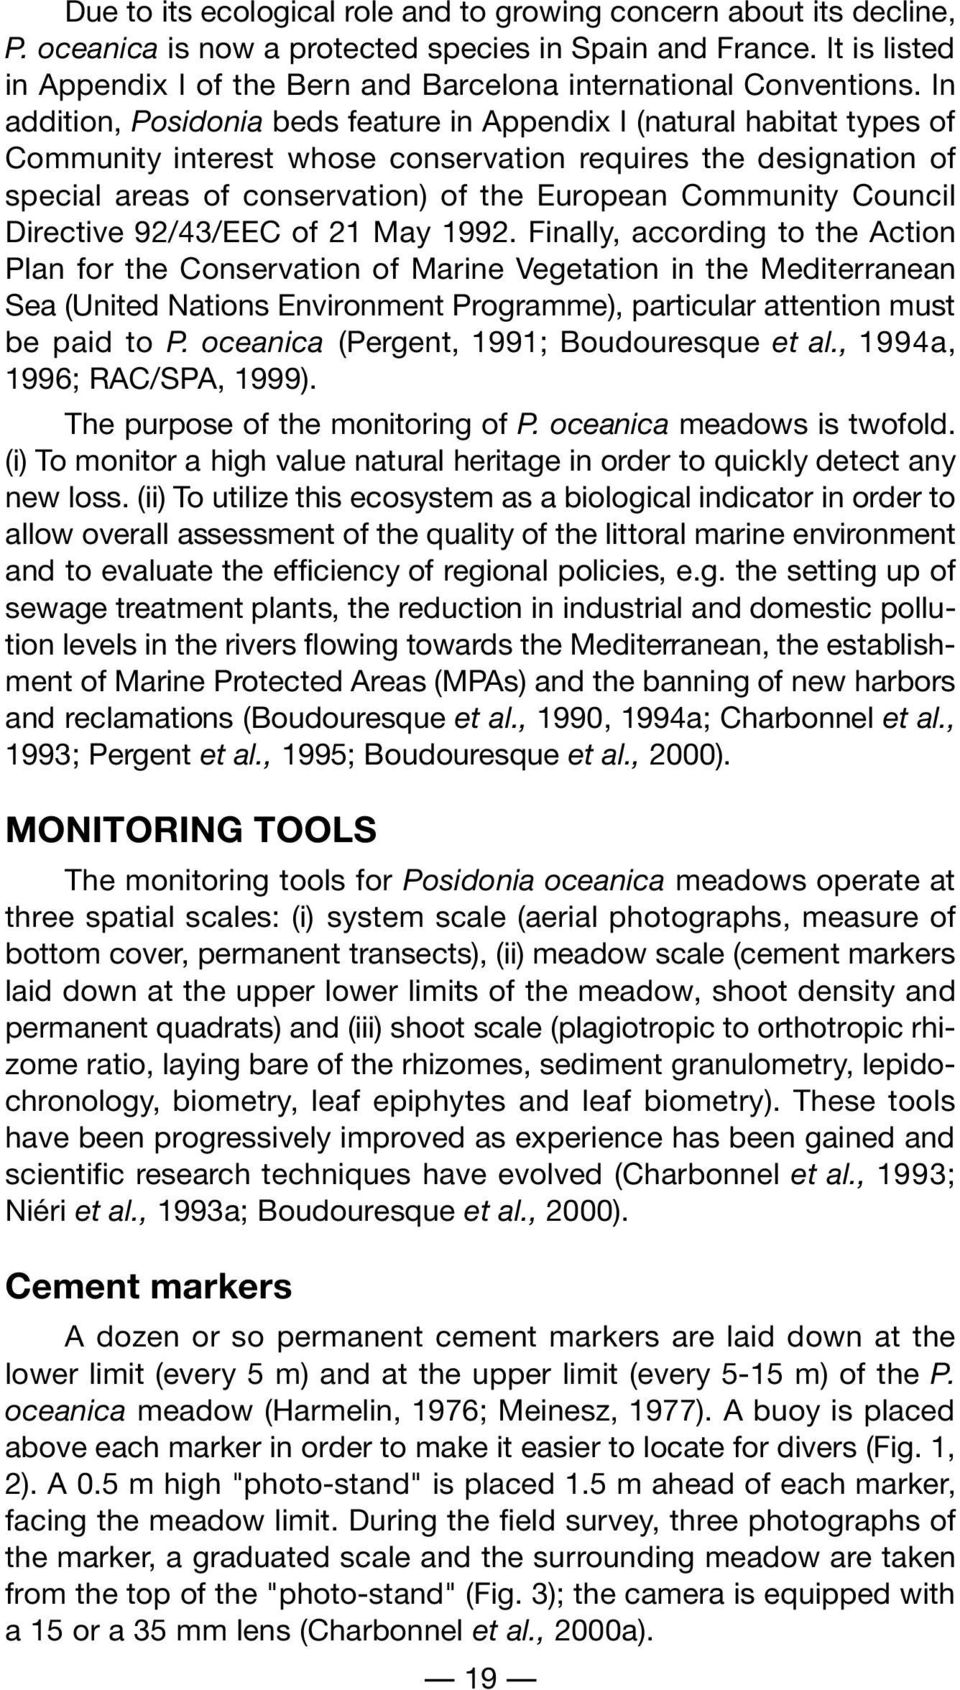 In addition, Posidonia beds feature in Appendix I (natural habitat types of Community interest whose conservation requires the designation of special areas of conservation) of the European Community